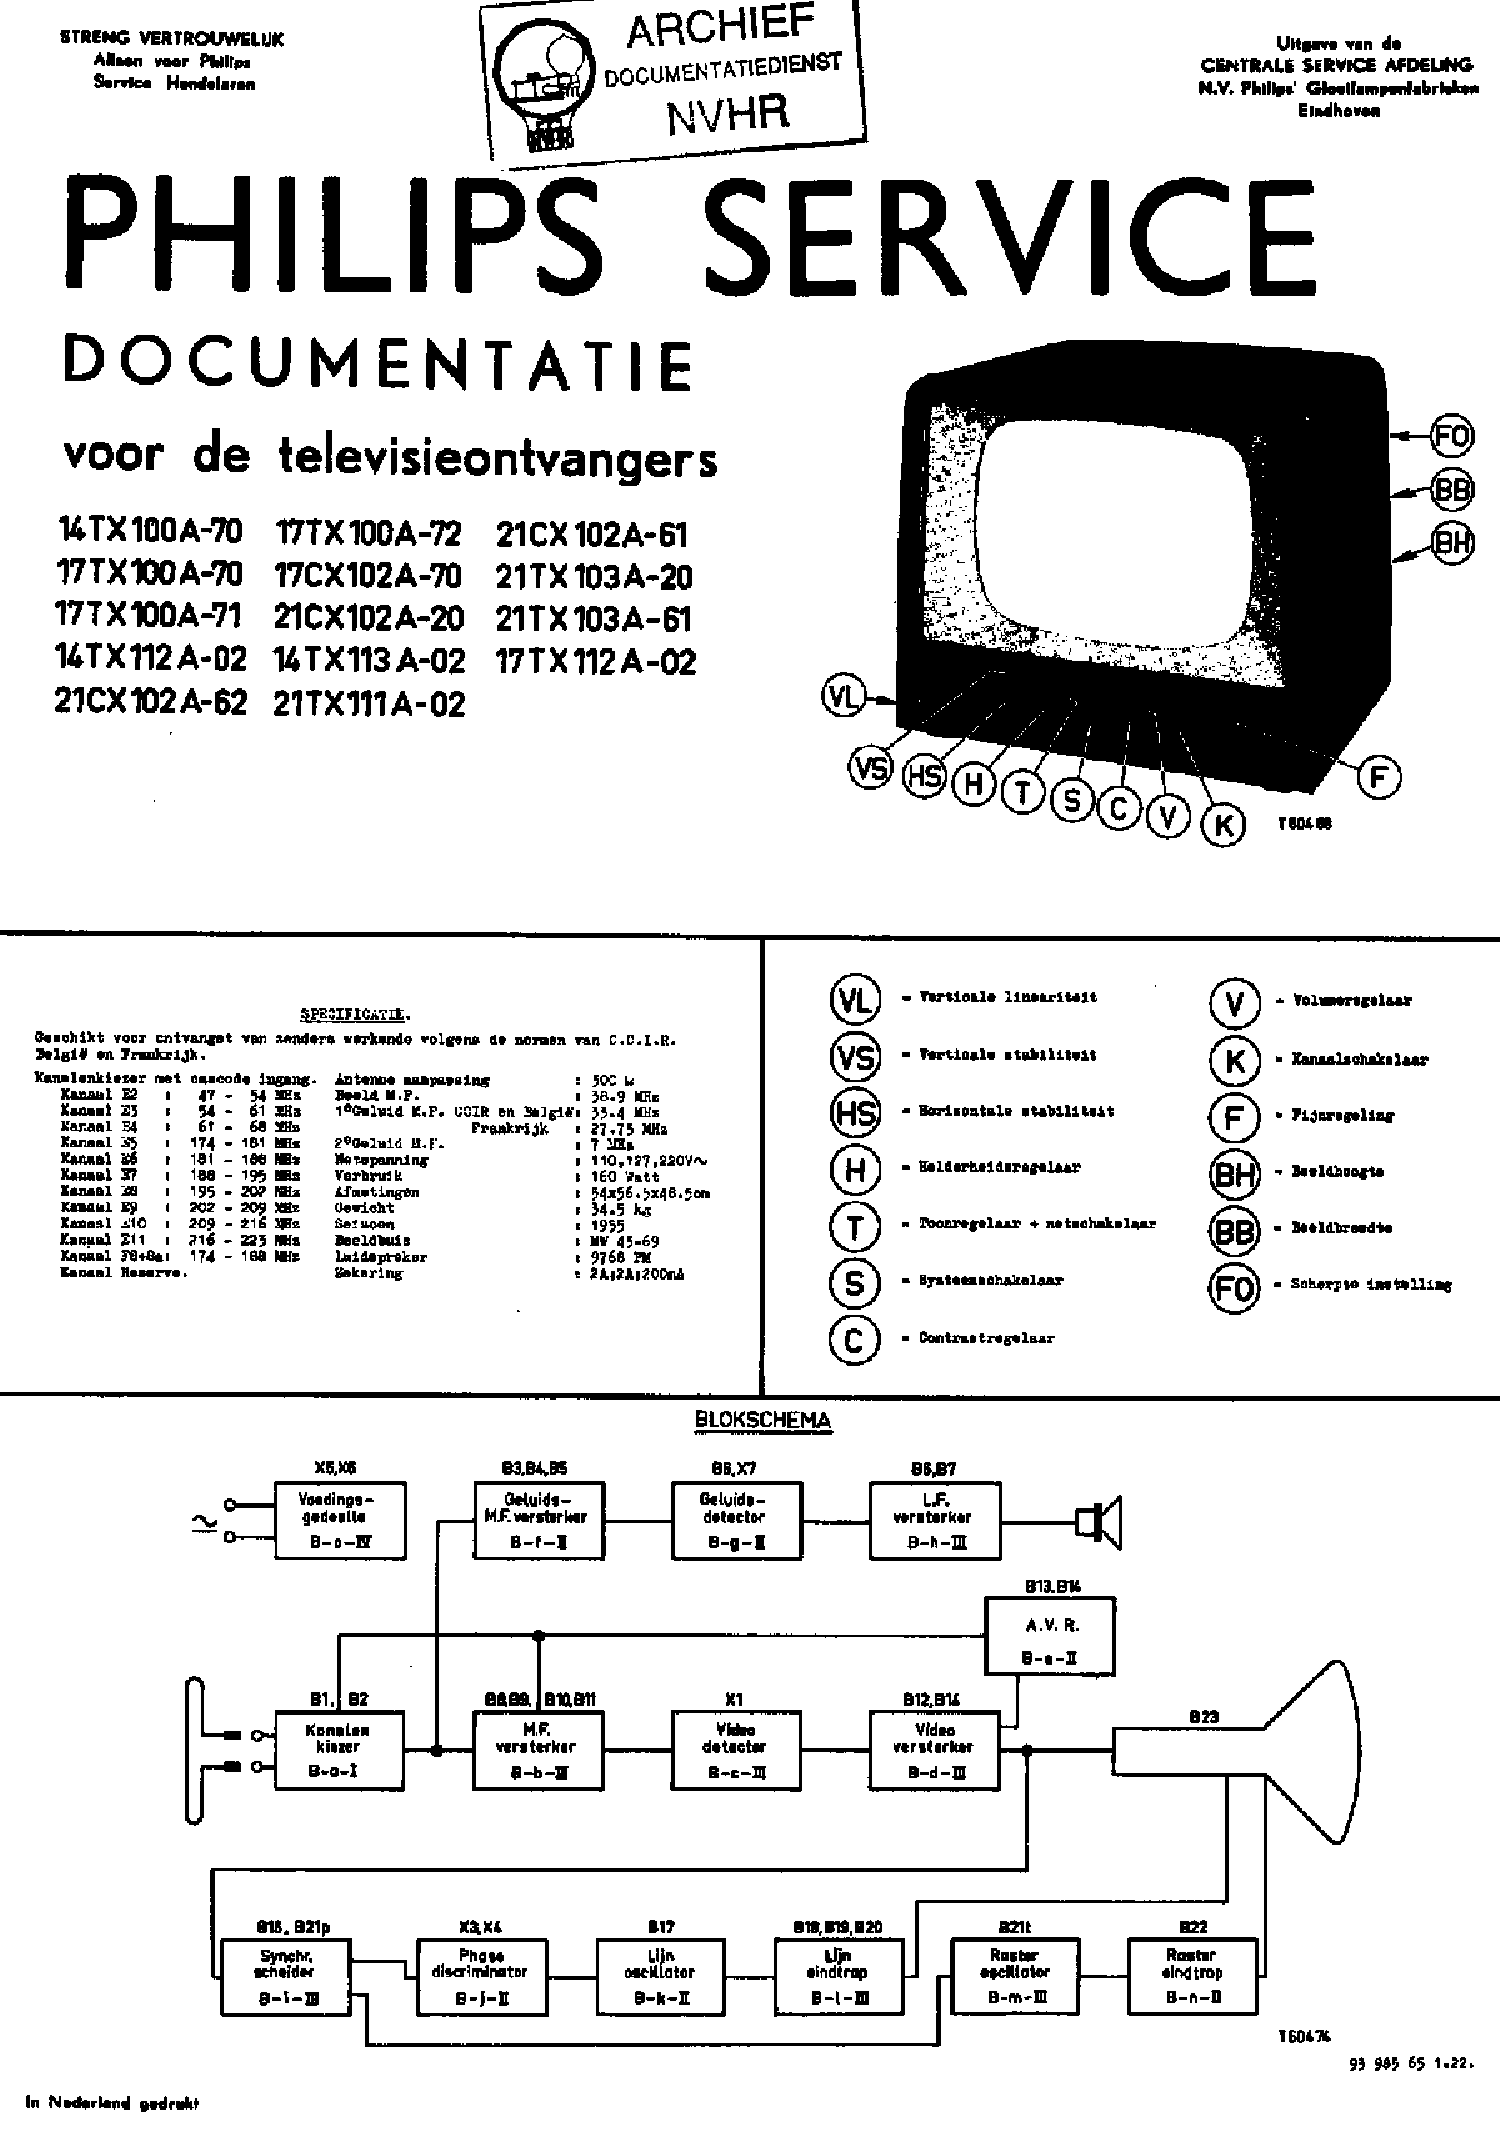 PHILIPS 14 17 TX100A 14 17 TX112 113 A 21 CX TX 102 103 11 A TV RECEIVER 1954 SM service manual (1st page)